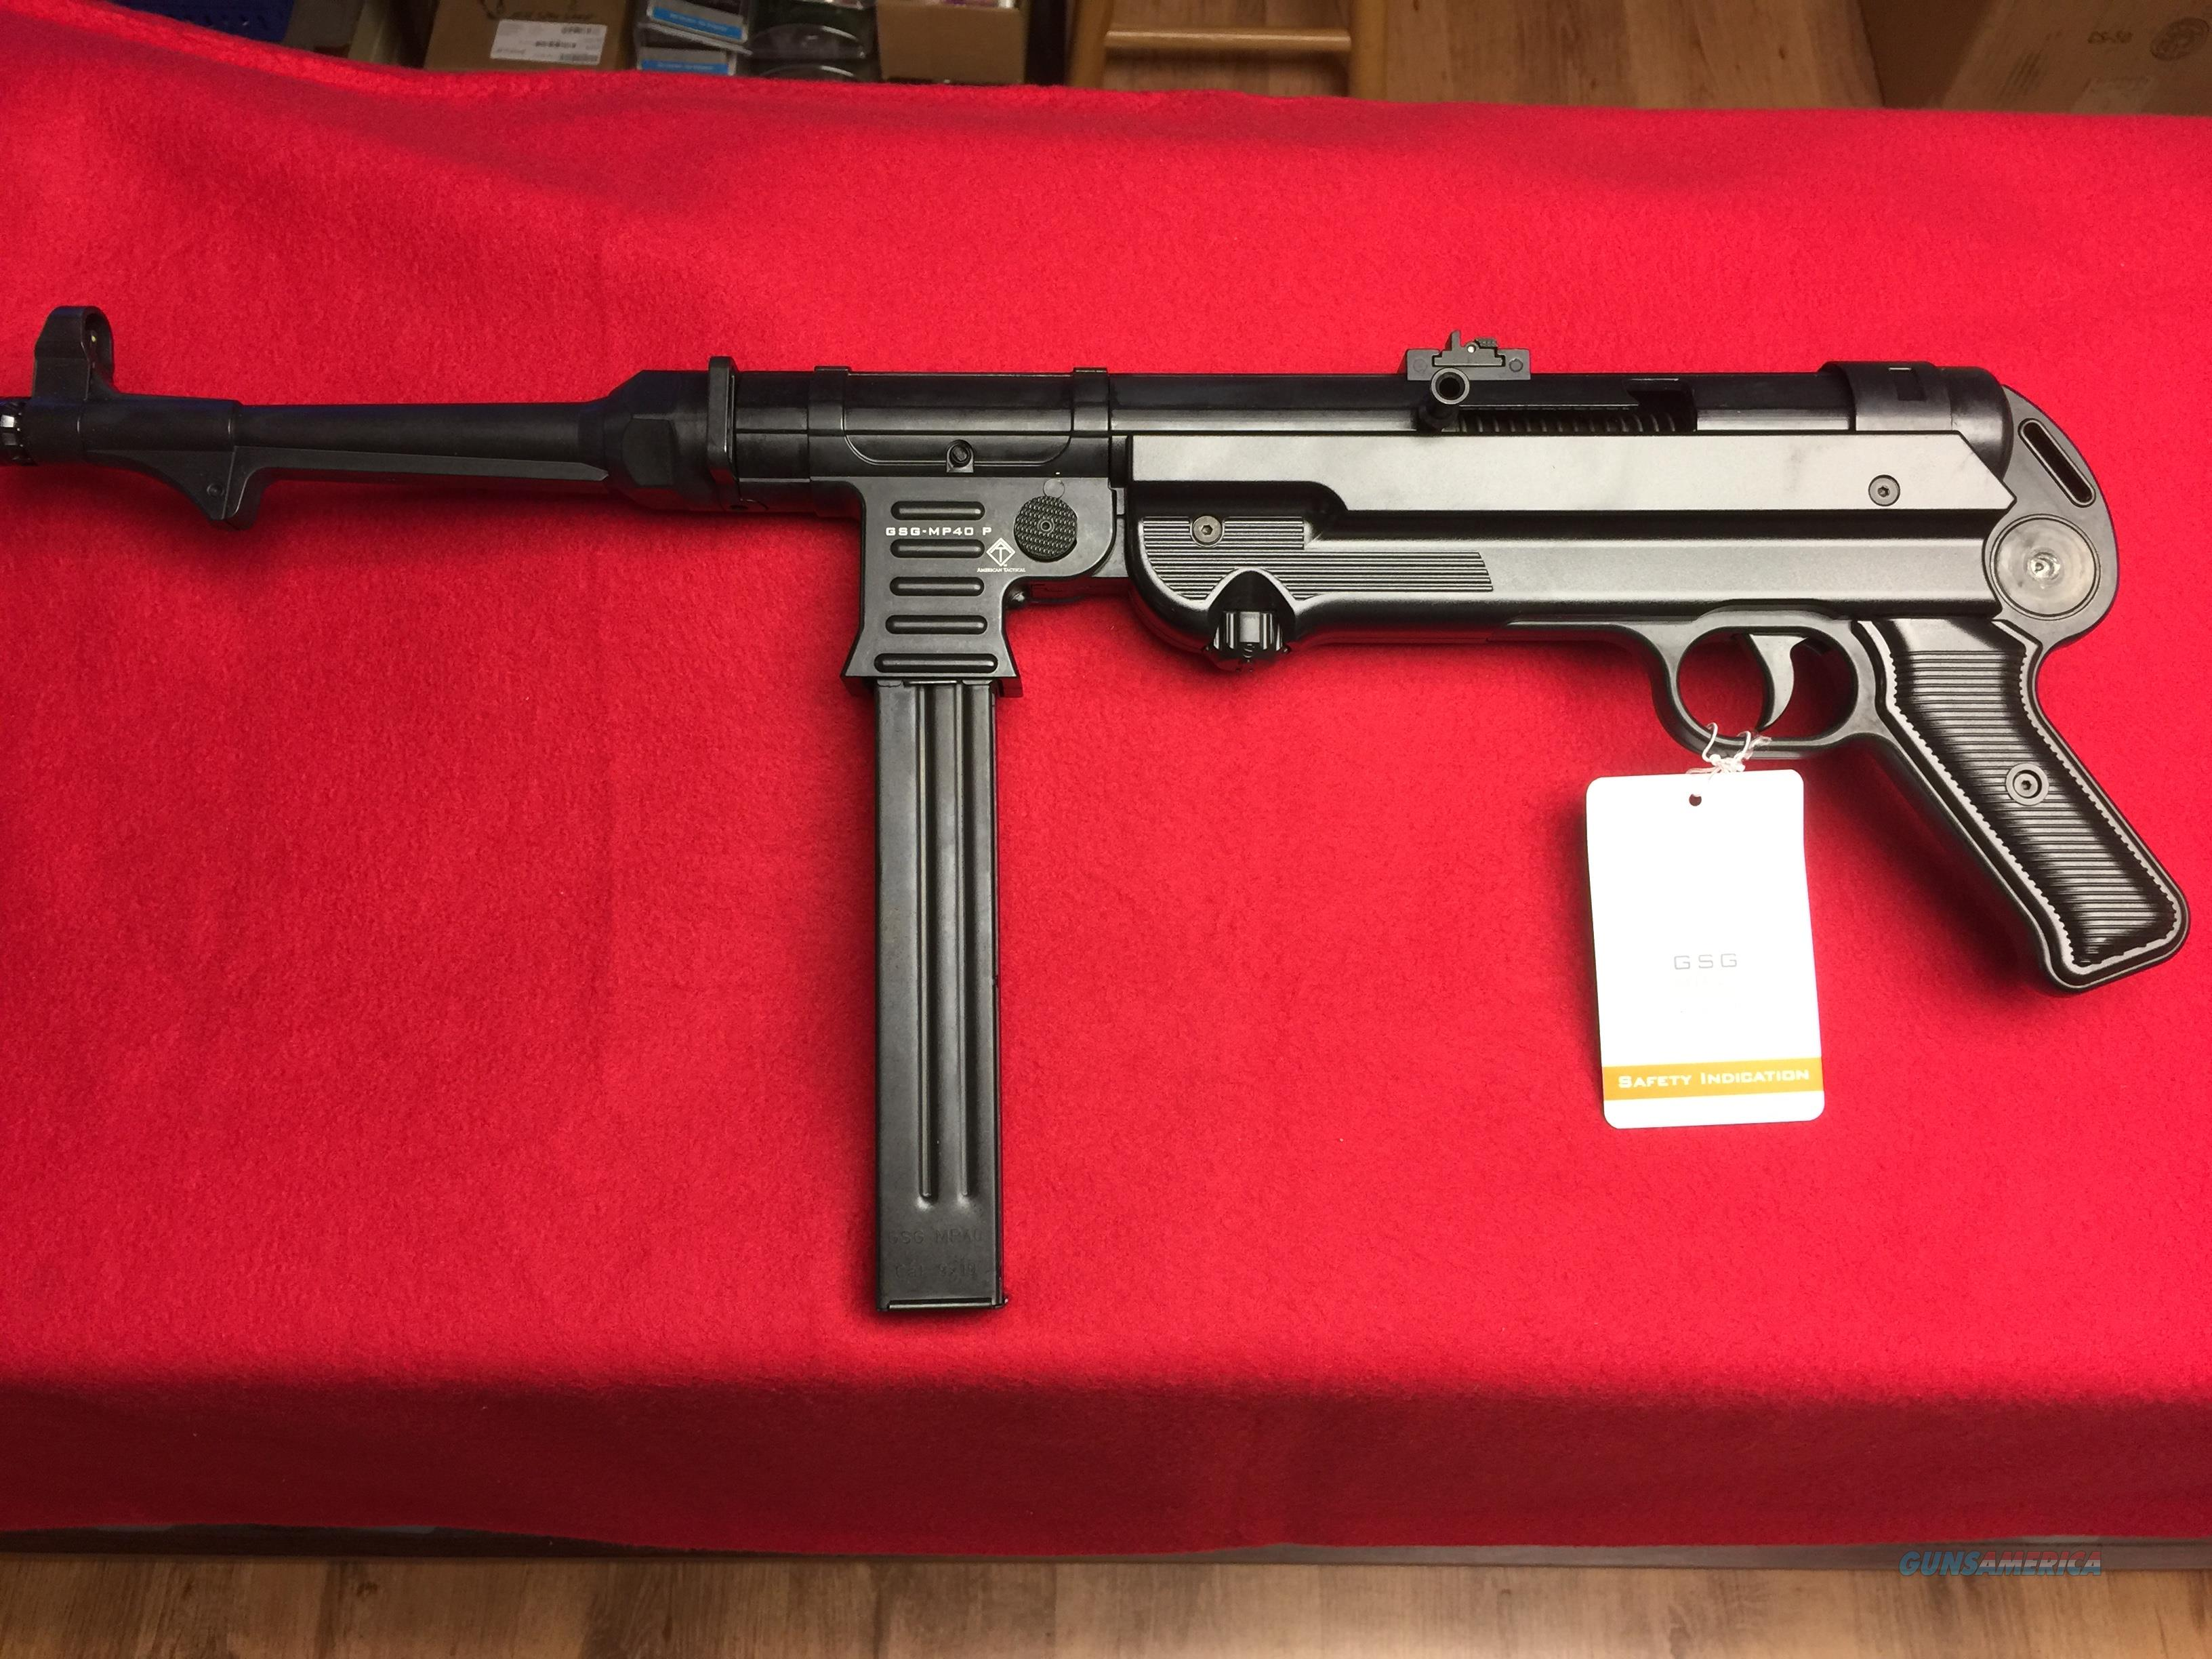 ATI - GSG MP 40P - 9mm  - New in the Box  Guns > Pistols > G Misc Pistols